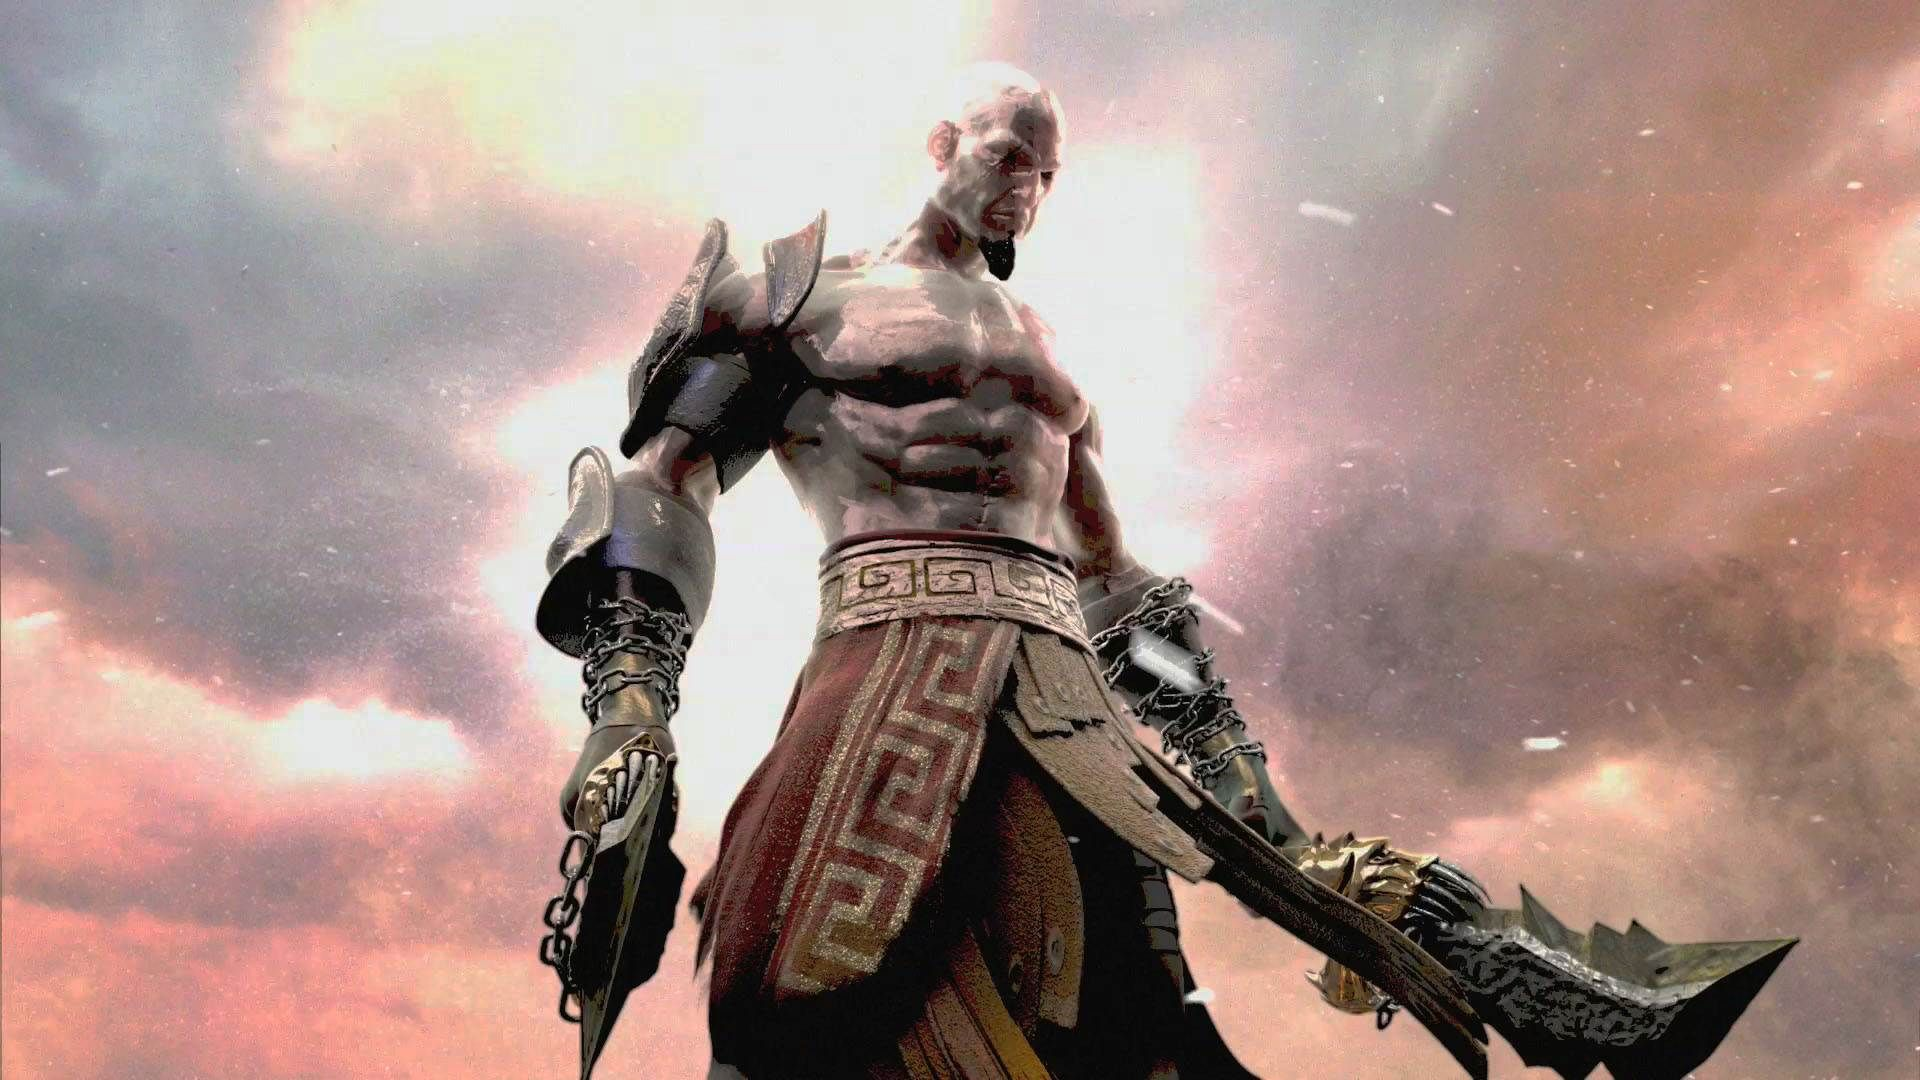 Full Hd Wallpaper God Of War Ghost Of Sparta Kratos Shield Spear 1920 1080 Kratos Hd Wallpapers Adorable Wallpapers